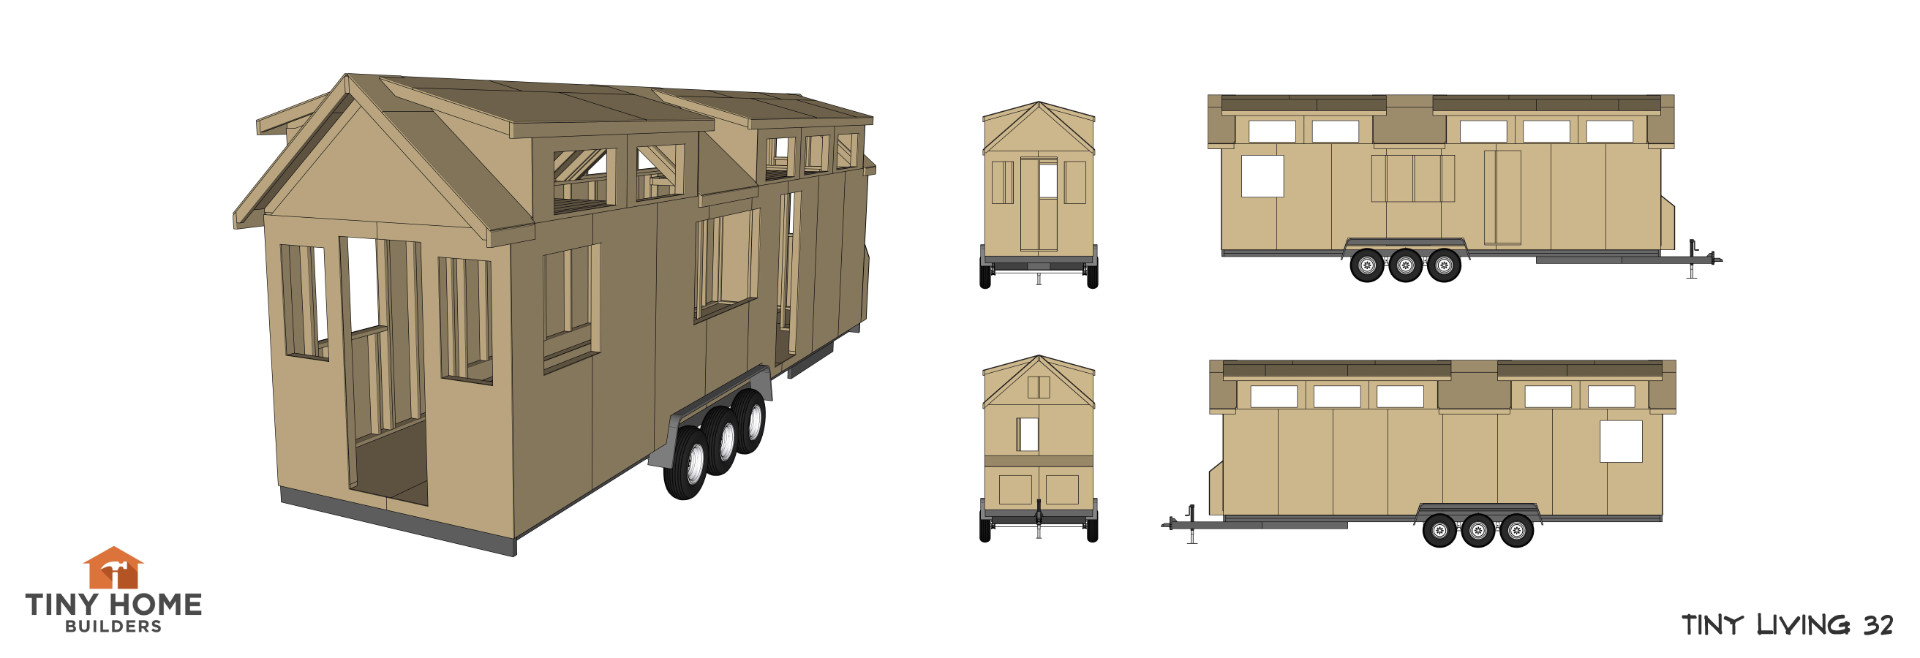 Tiny House Plans - Tiny Home Builders